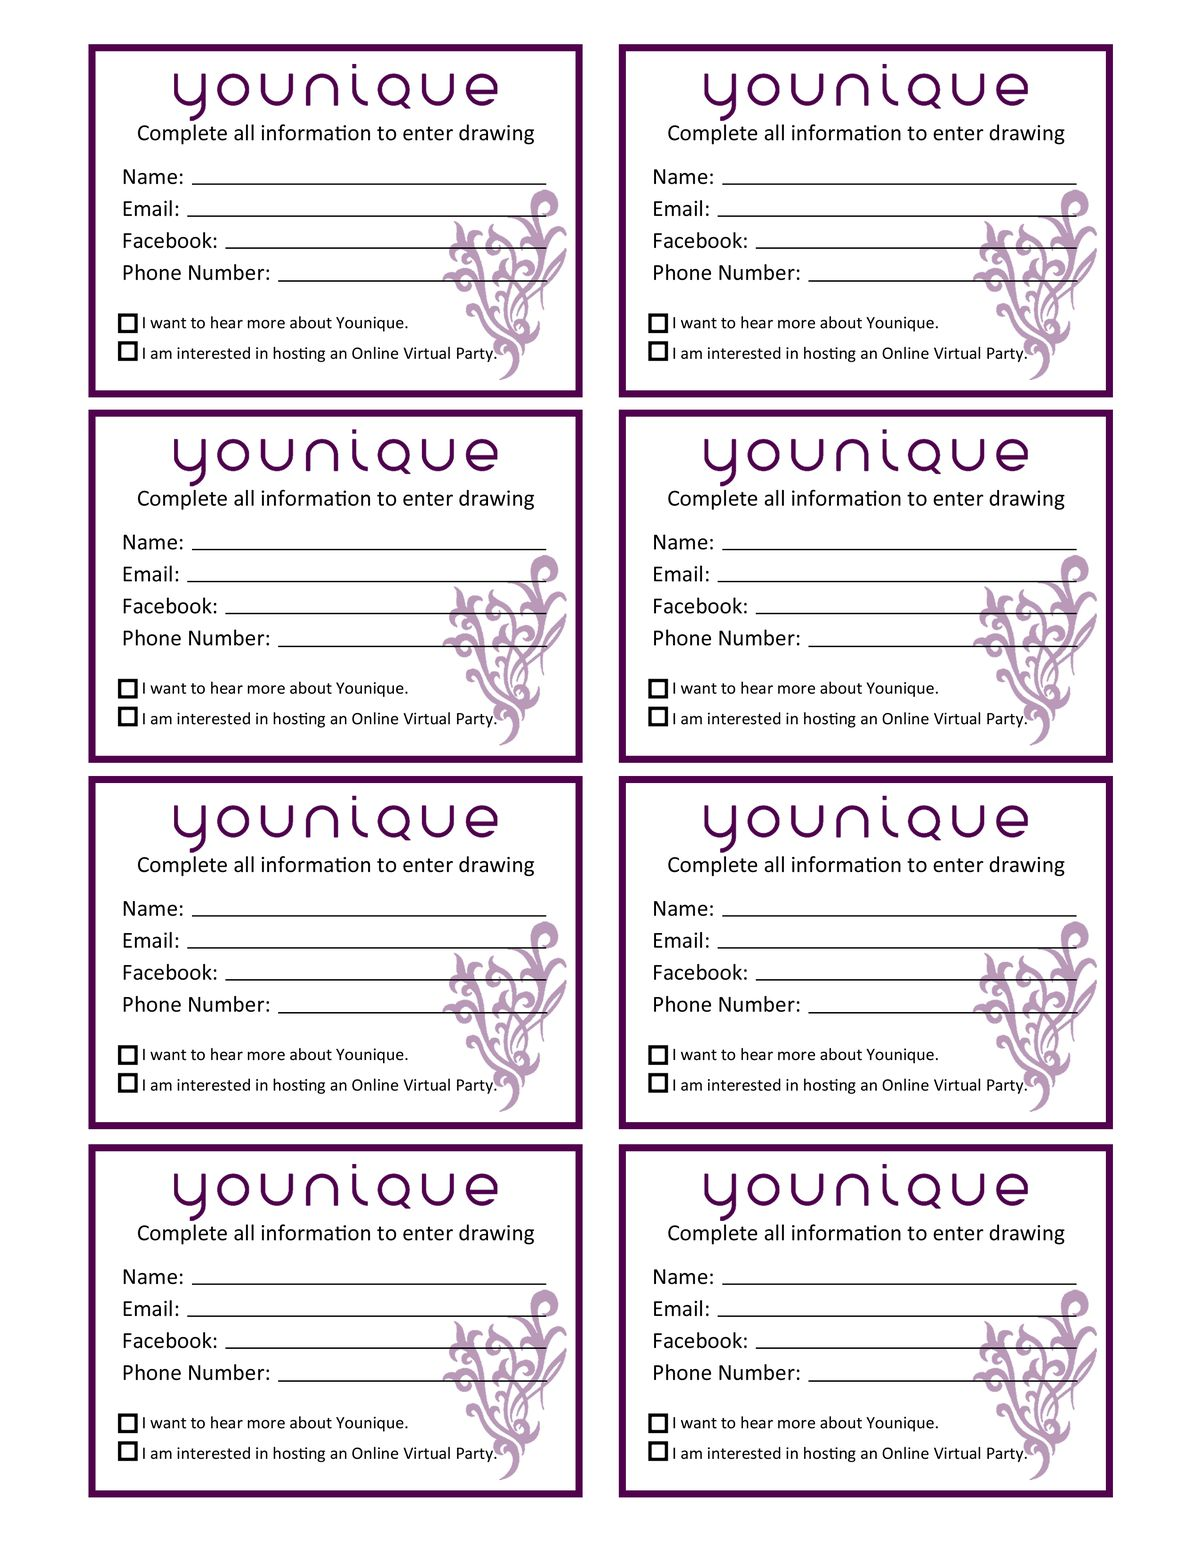 younique raffle tickets for events created by janet saywer younique raffle tickets for events created by janet saywers for presenters younique drawing